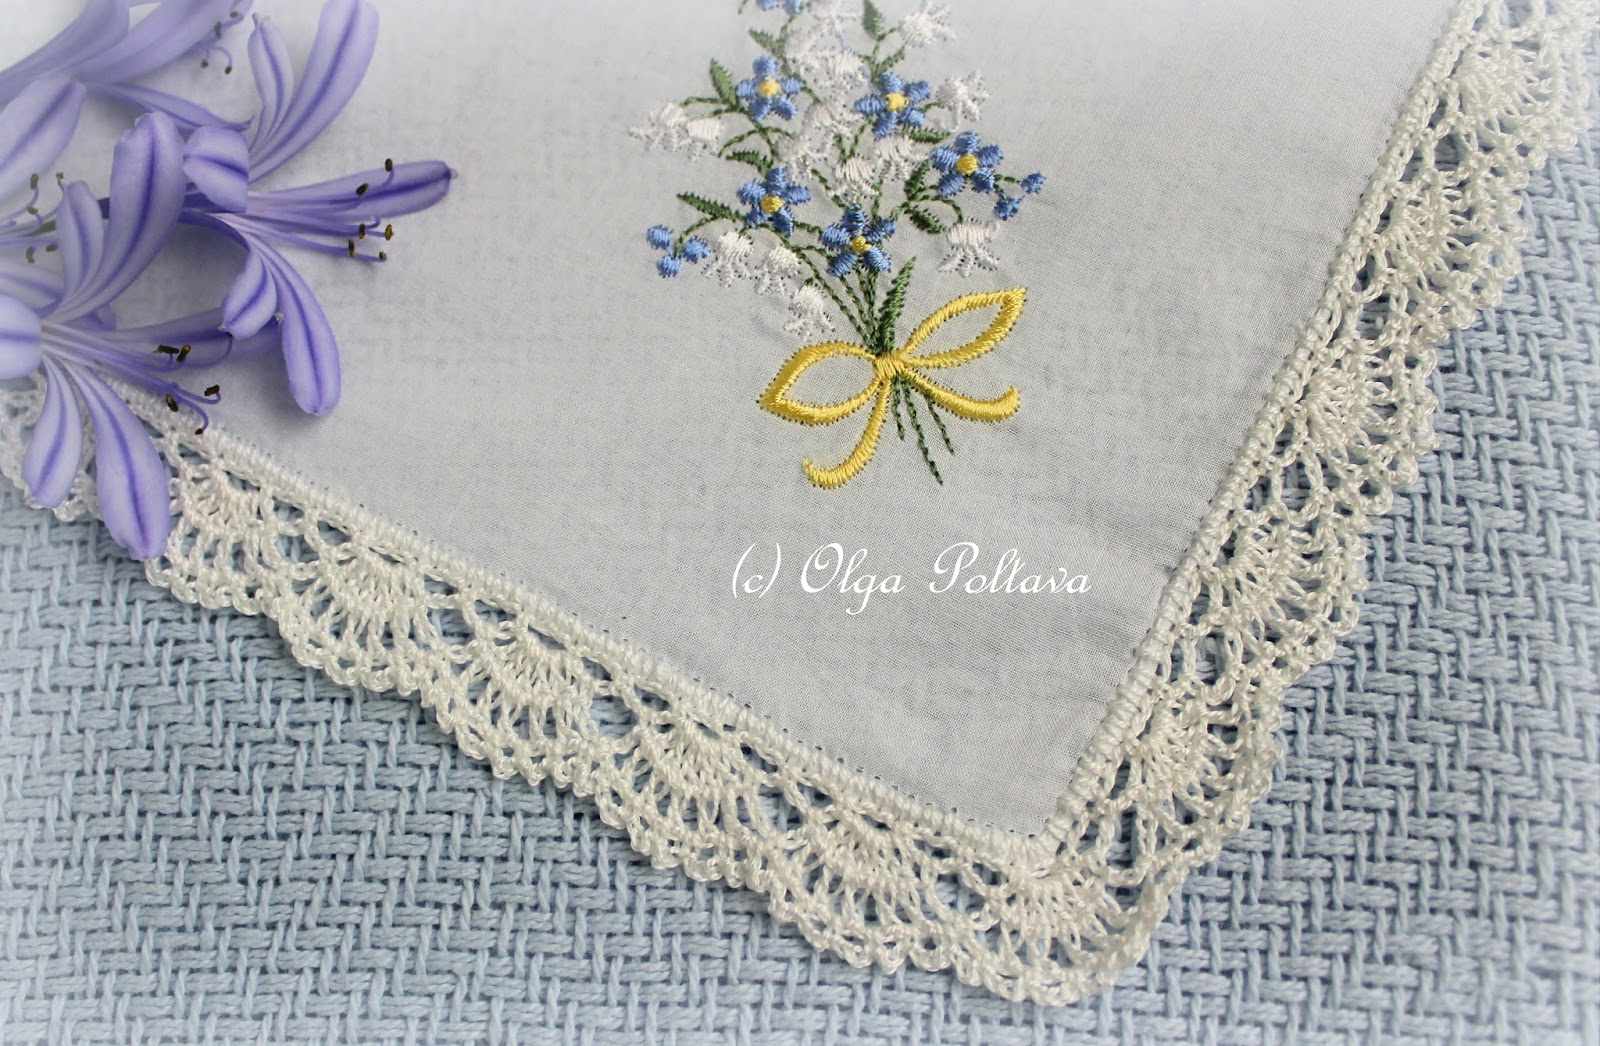 Simple Crochet Edging Patterns : Lacy Crochet: Lace Edging for a Handkerchief, Simple ...